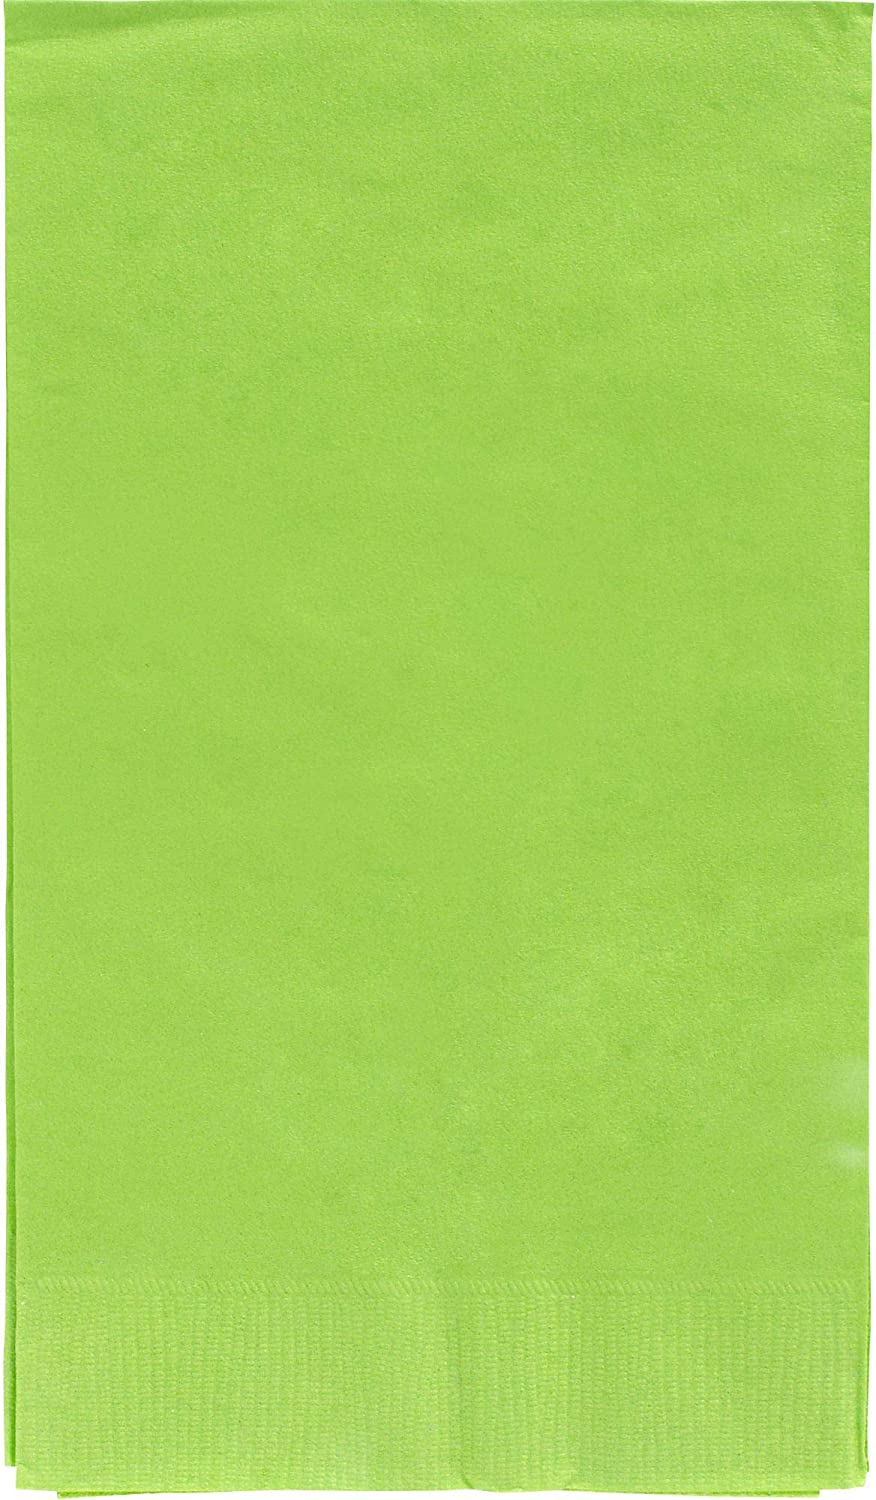 40 Ct. Amscan Silver 2-Ply Paper Guest Towel Big Party Pack